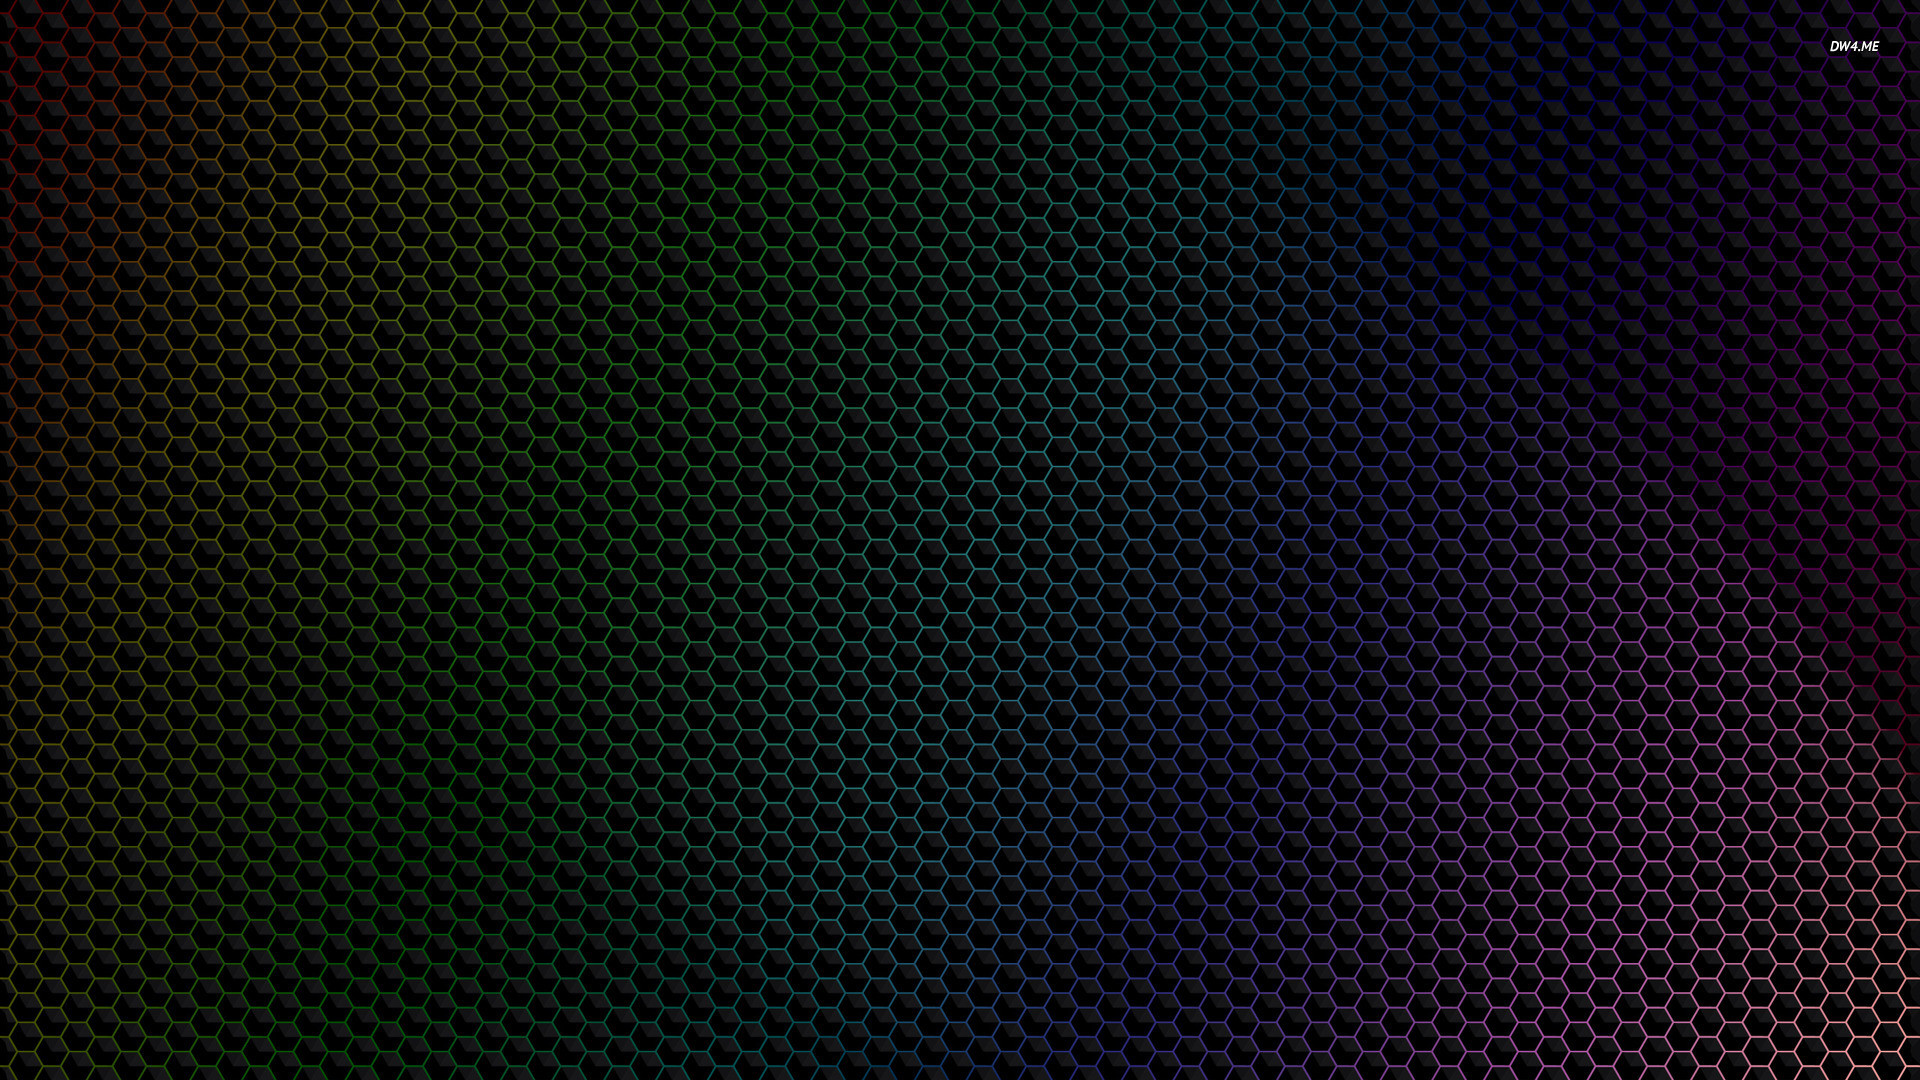 Res: 1920x1080, Hexagon pattern wallpaper Abstract wallpapers 494